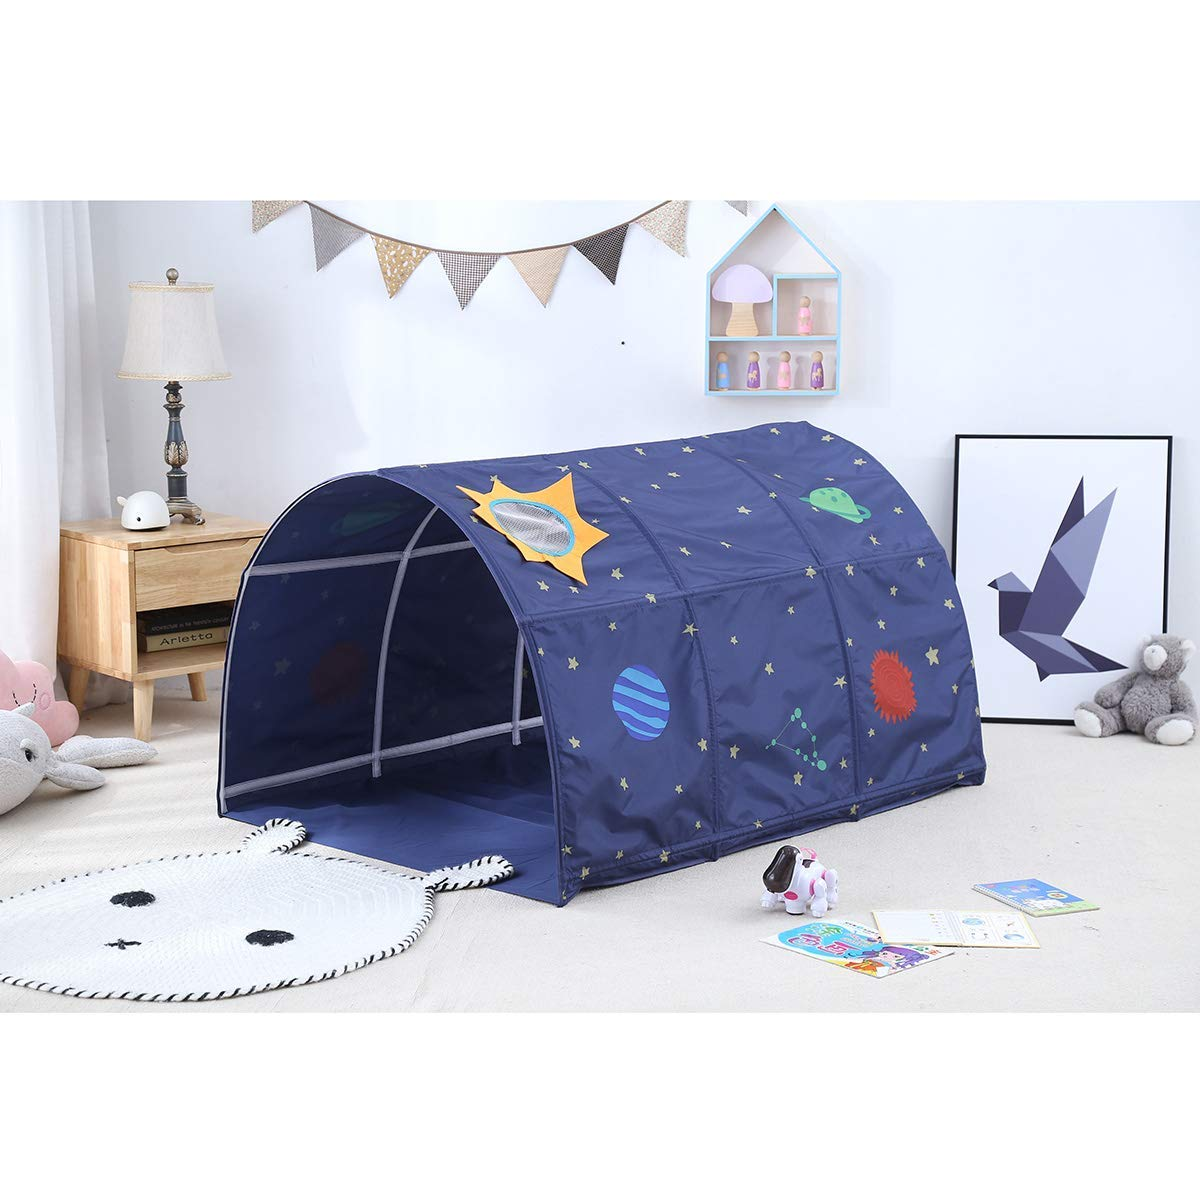 Cozyhoma Kids Play Bed Tent Childrens Tunnel for 90-100 cm in Width Loft Bed Bunk Kids Toddler Tent